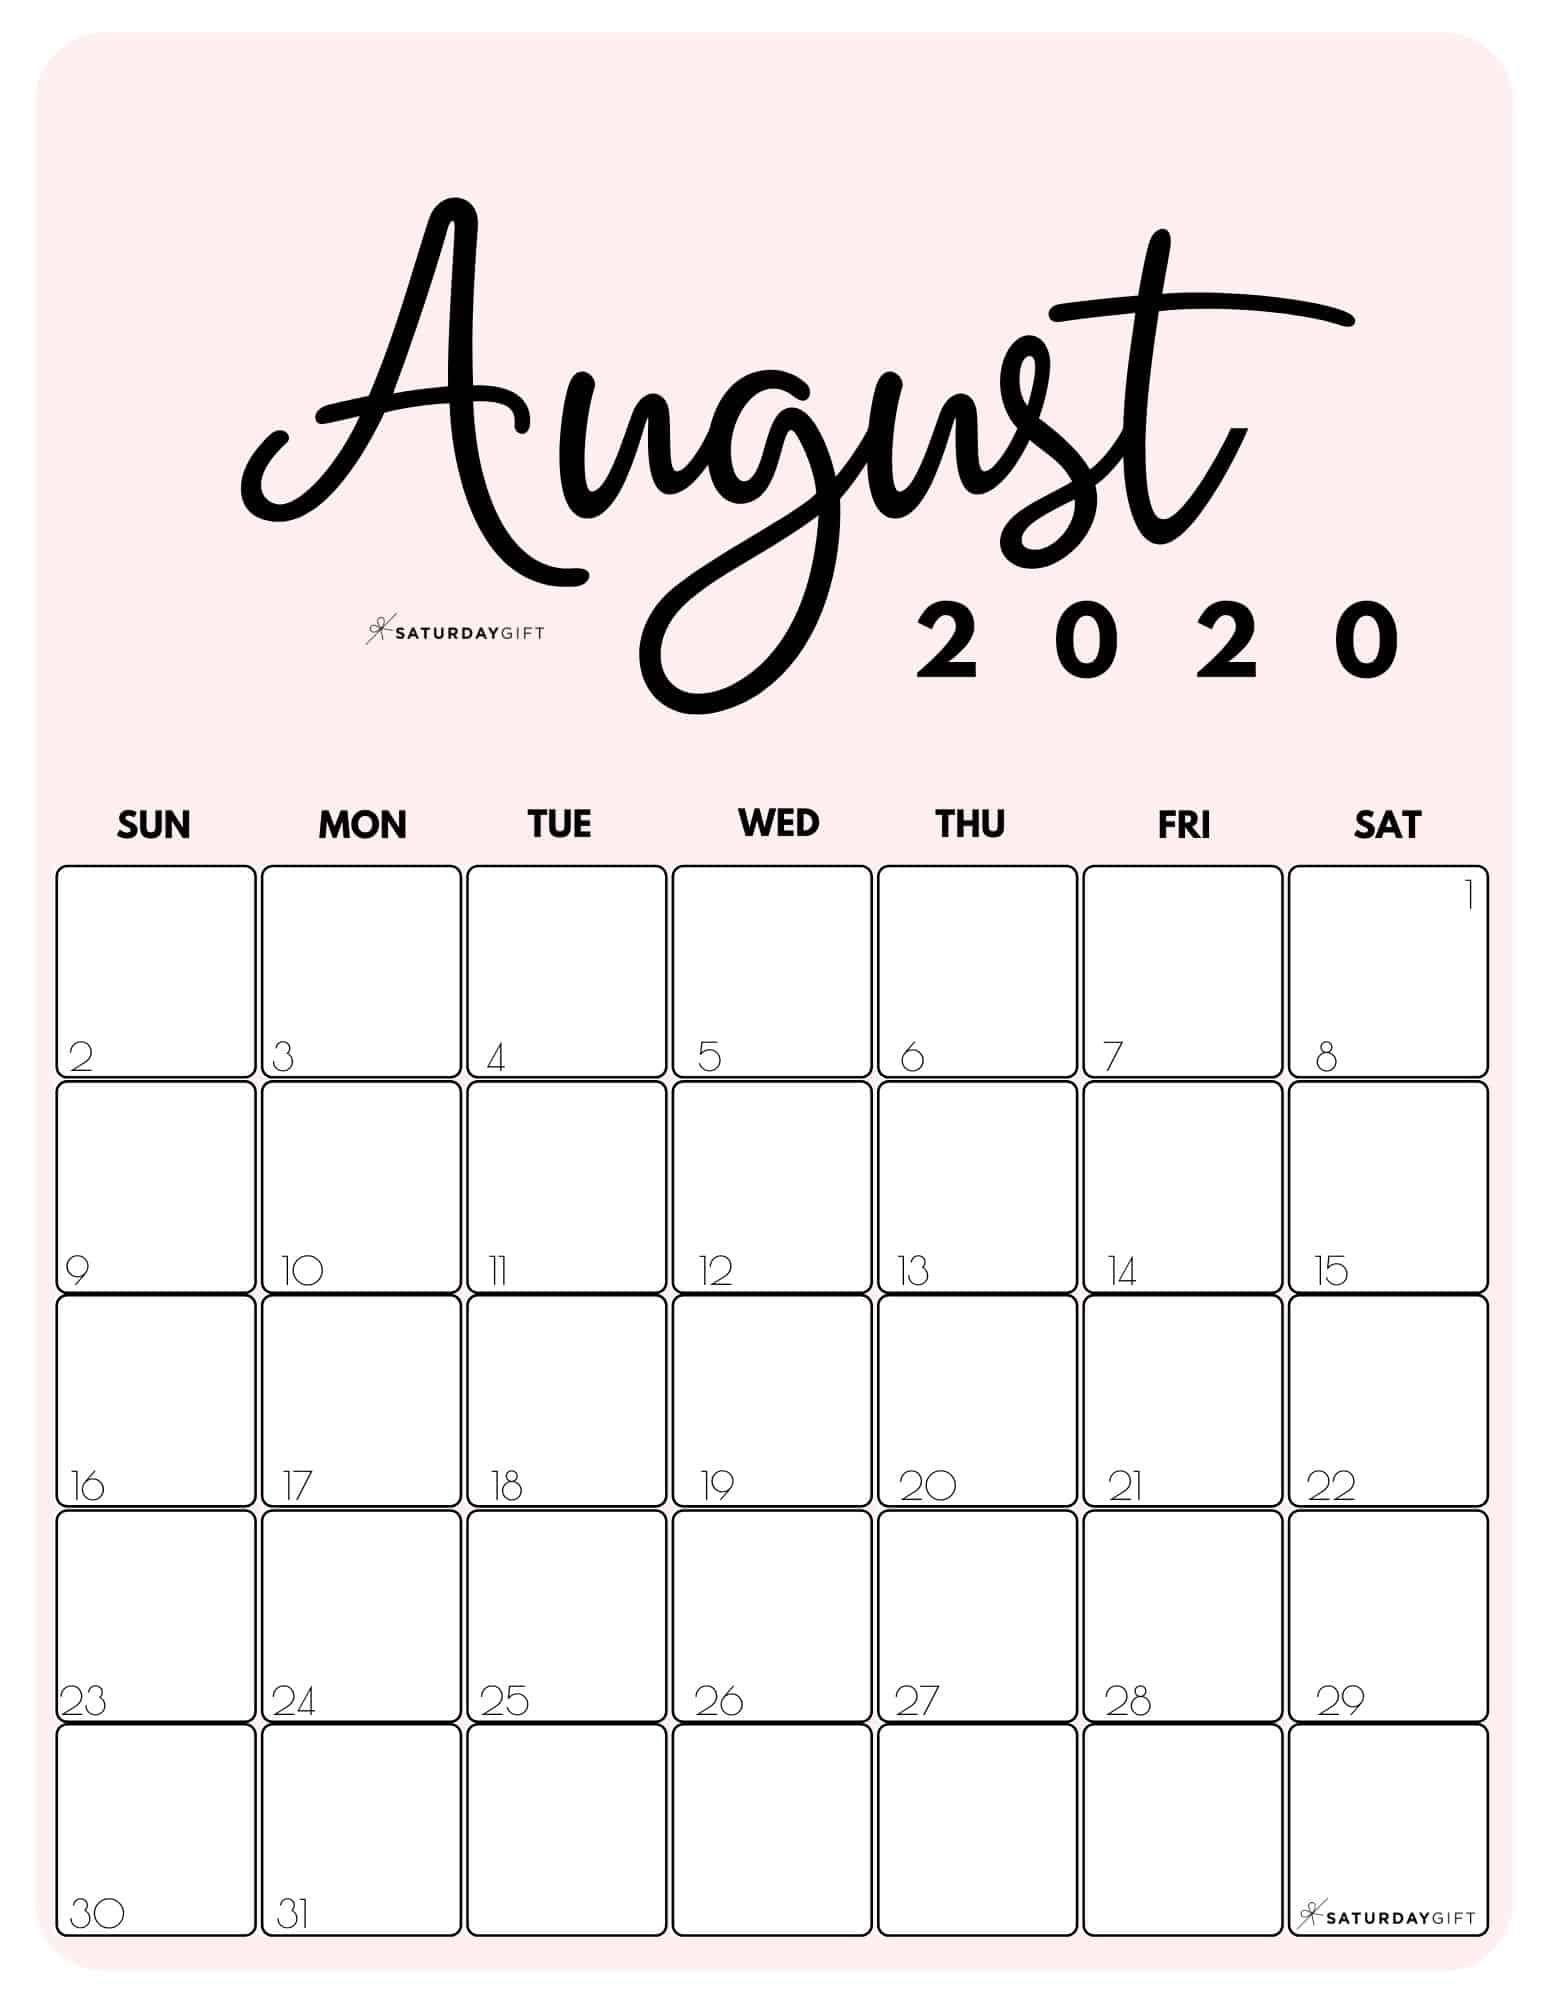 Cute Free Printable August 2021 Calendar Saturdaygift August Calendar Calendar Printables Print Calendar